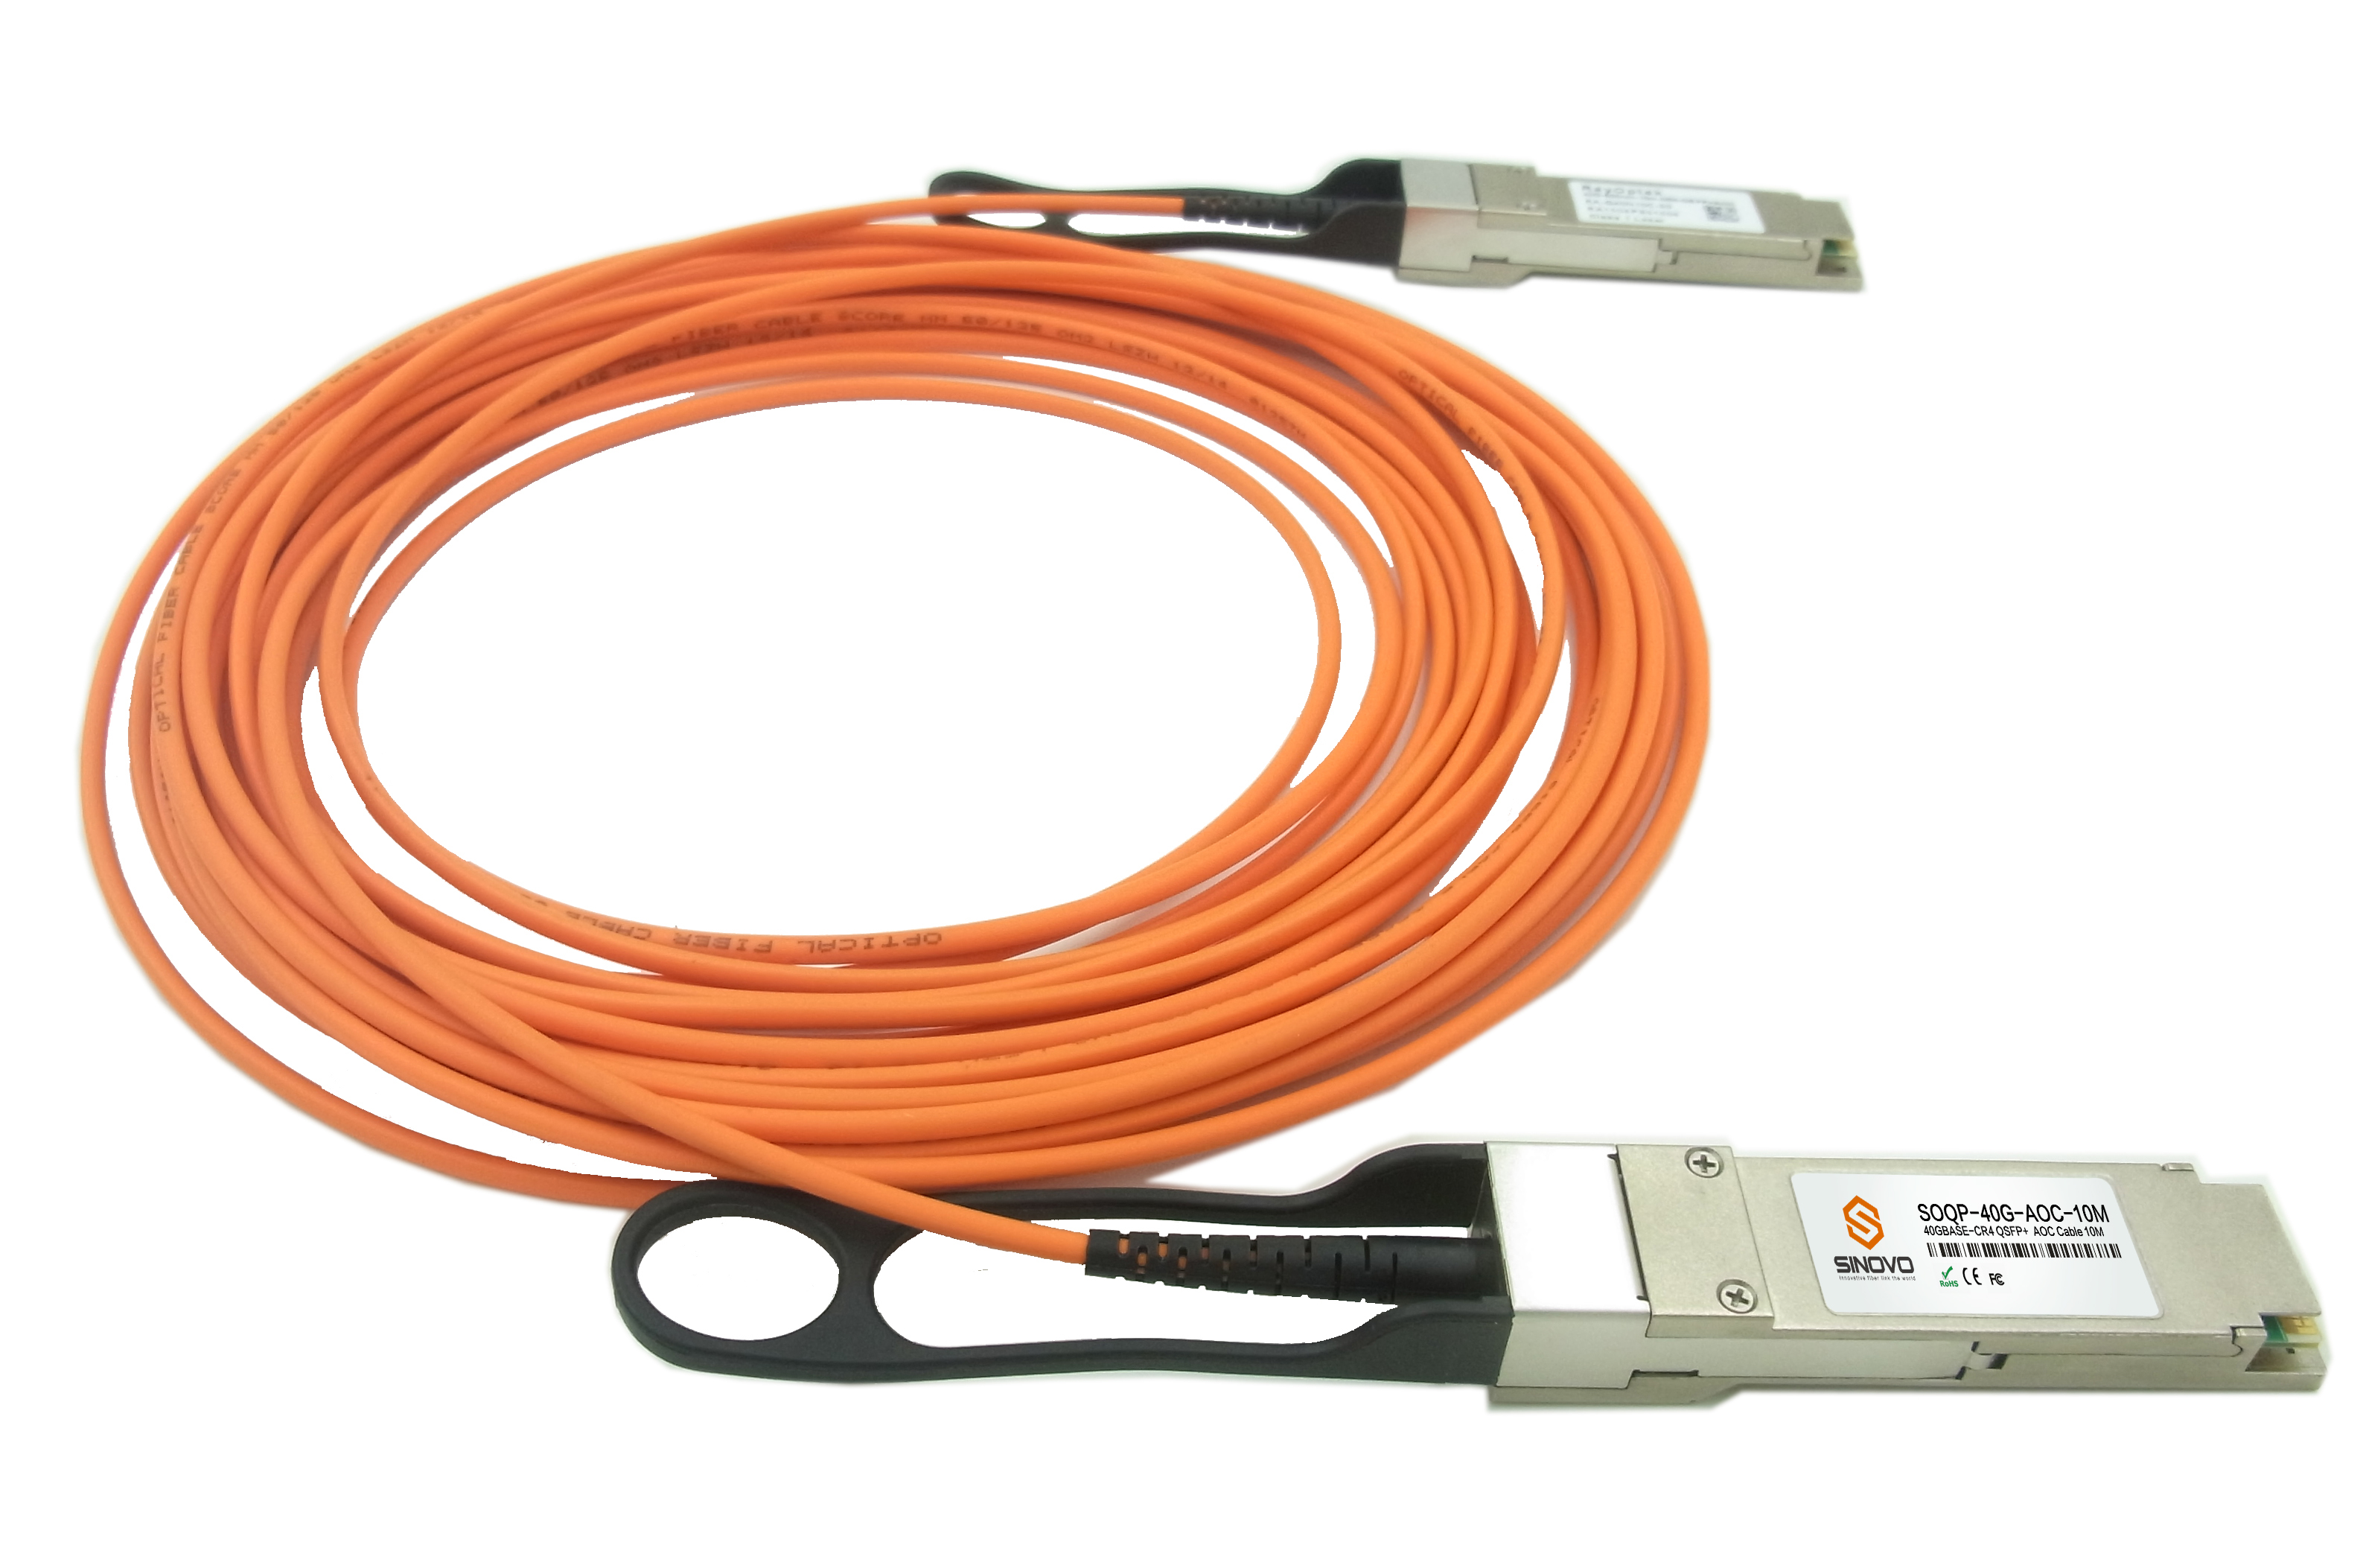 SINOVO Release out  4*SFP+ AOC Cable